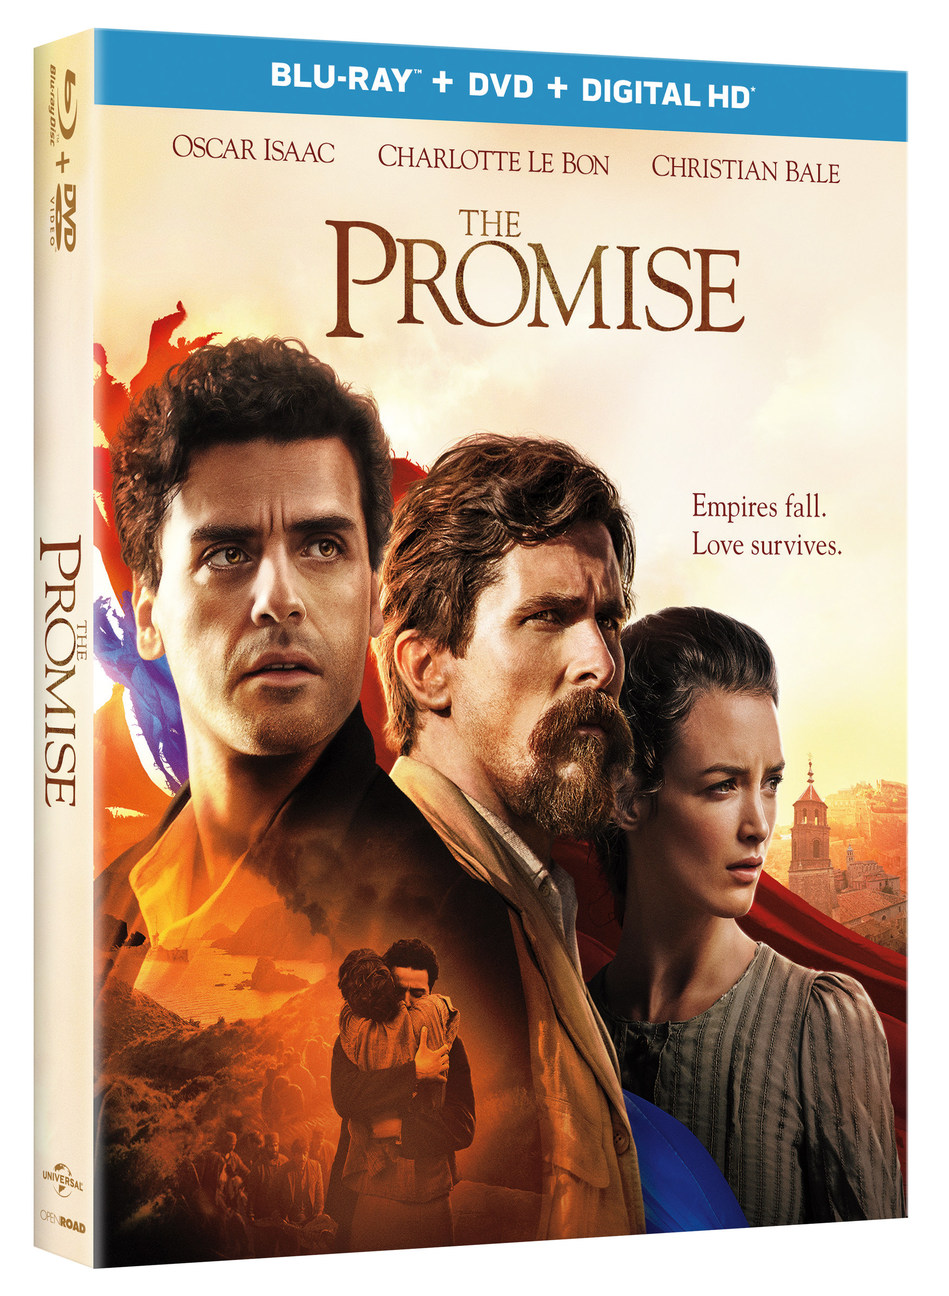 The Promise Blu-ray Review